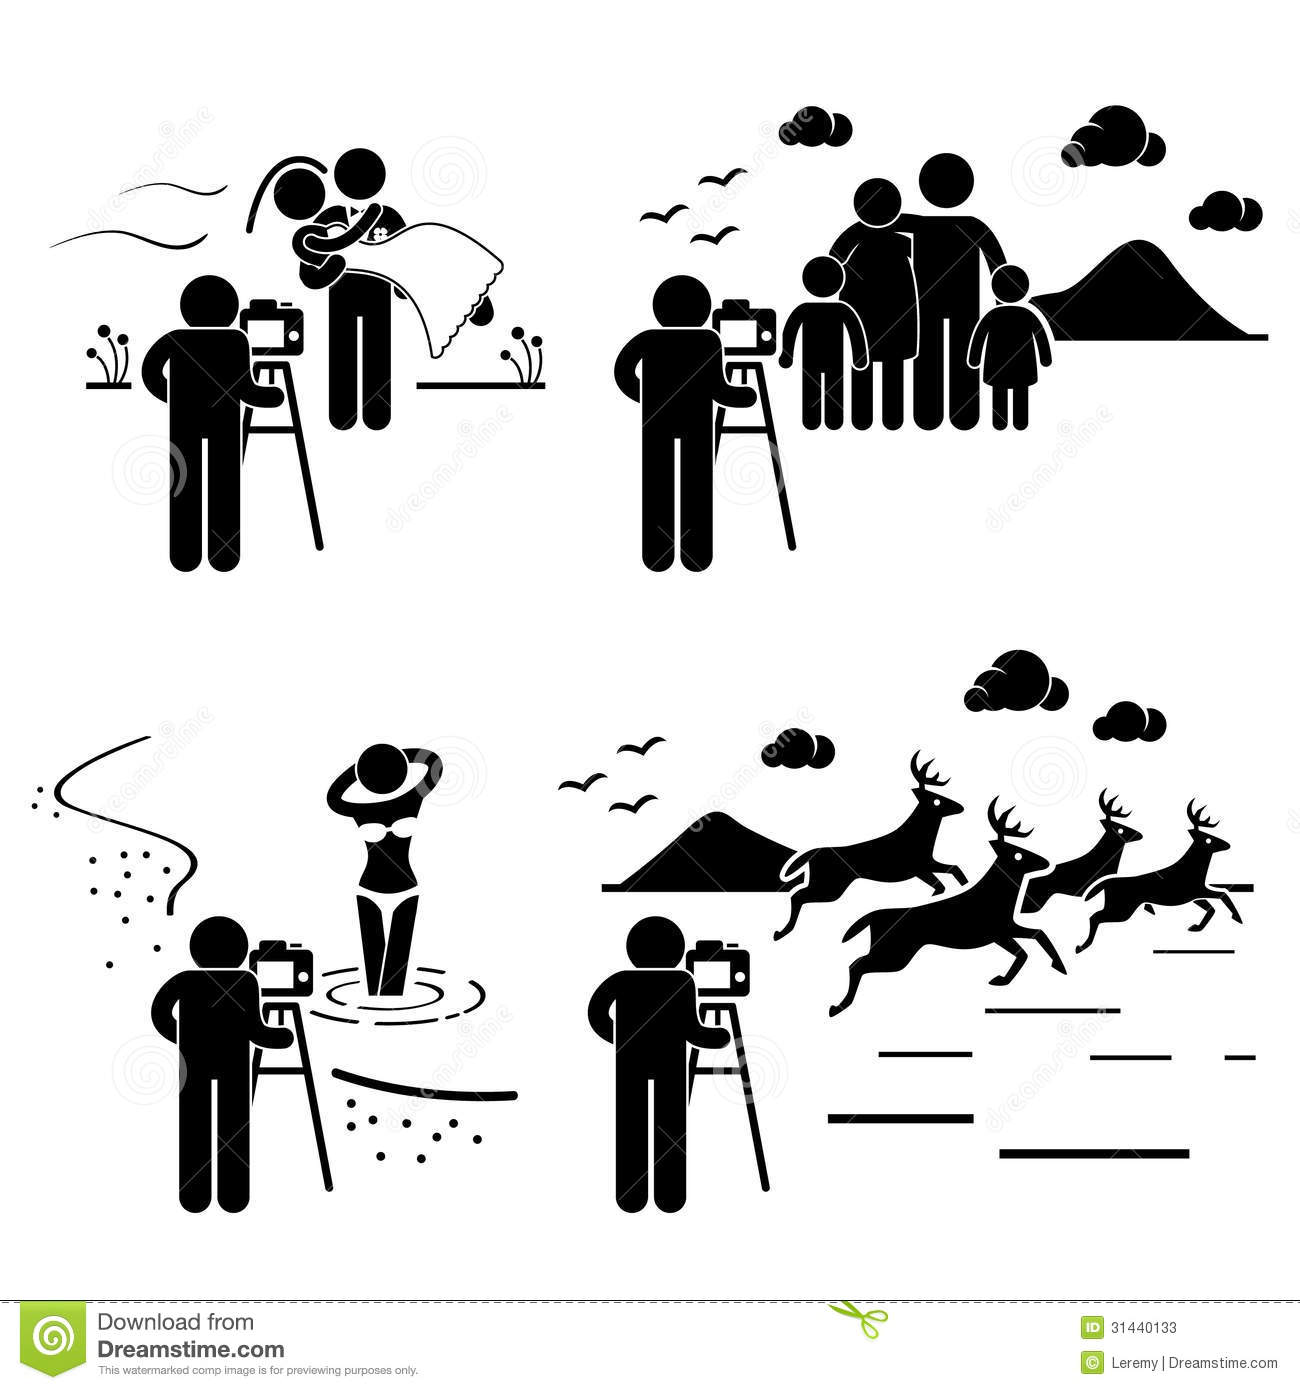 Stock Photos Photographer Photography Outdoor Pictogram Set People Pictograms Represent Wedding Family Model Image31440133 on illustration career information